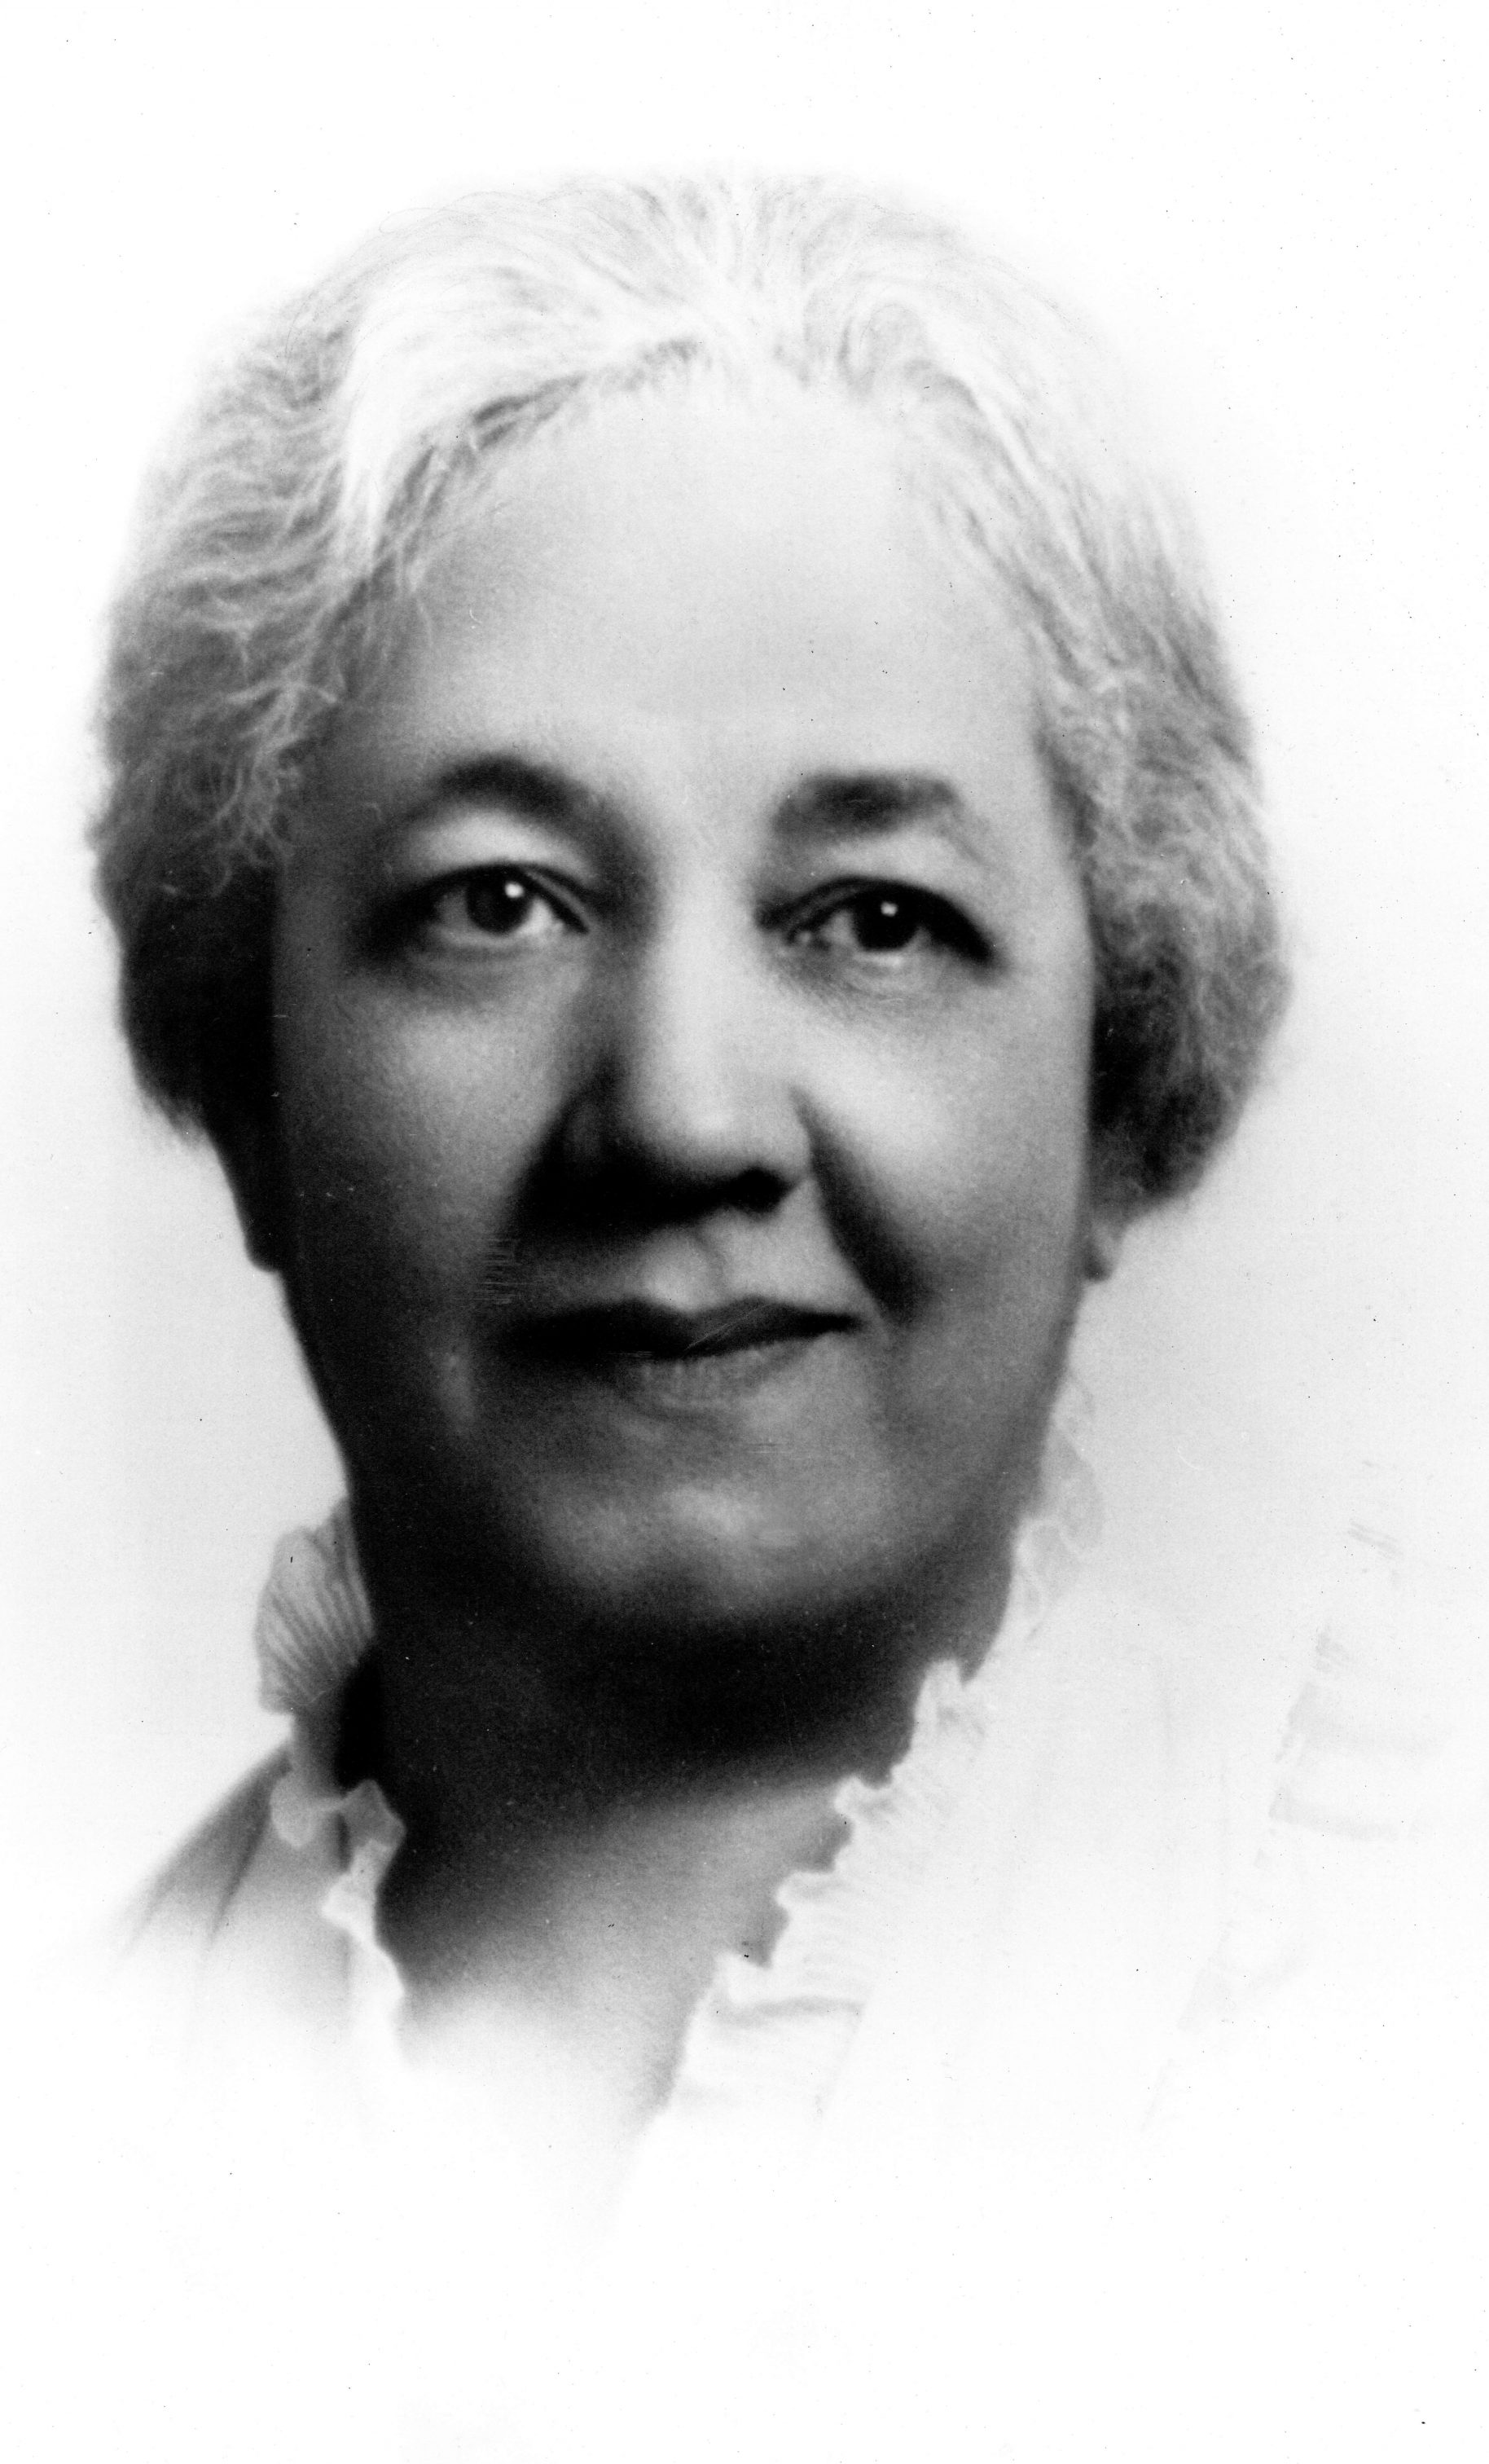 Mabel Raimey attended Marquette University Law School starting in 1922 and was the first African American woman admitted to the Wisconsin Bar in 1927. This photograph was taken between 1950 and 1970.